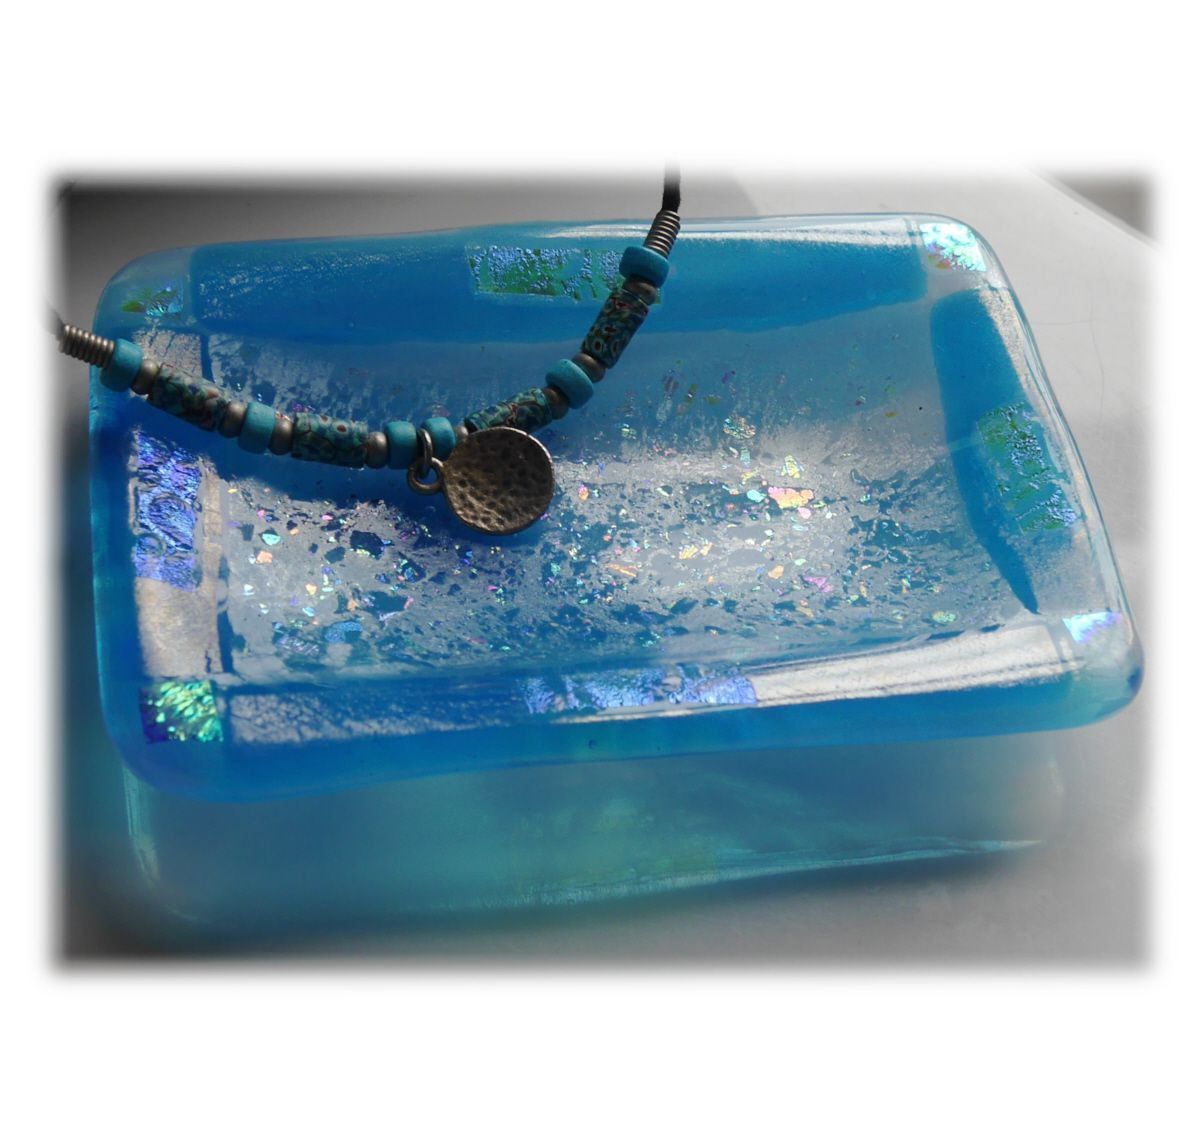 Soap Dish 013 Turquoise dichroic 1907 FREE 12.00